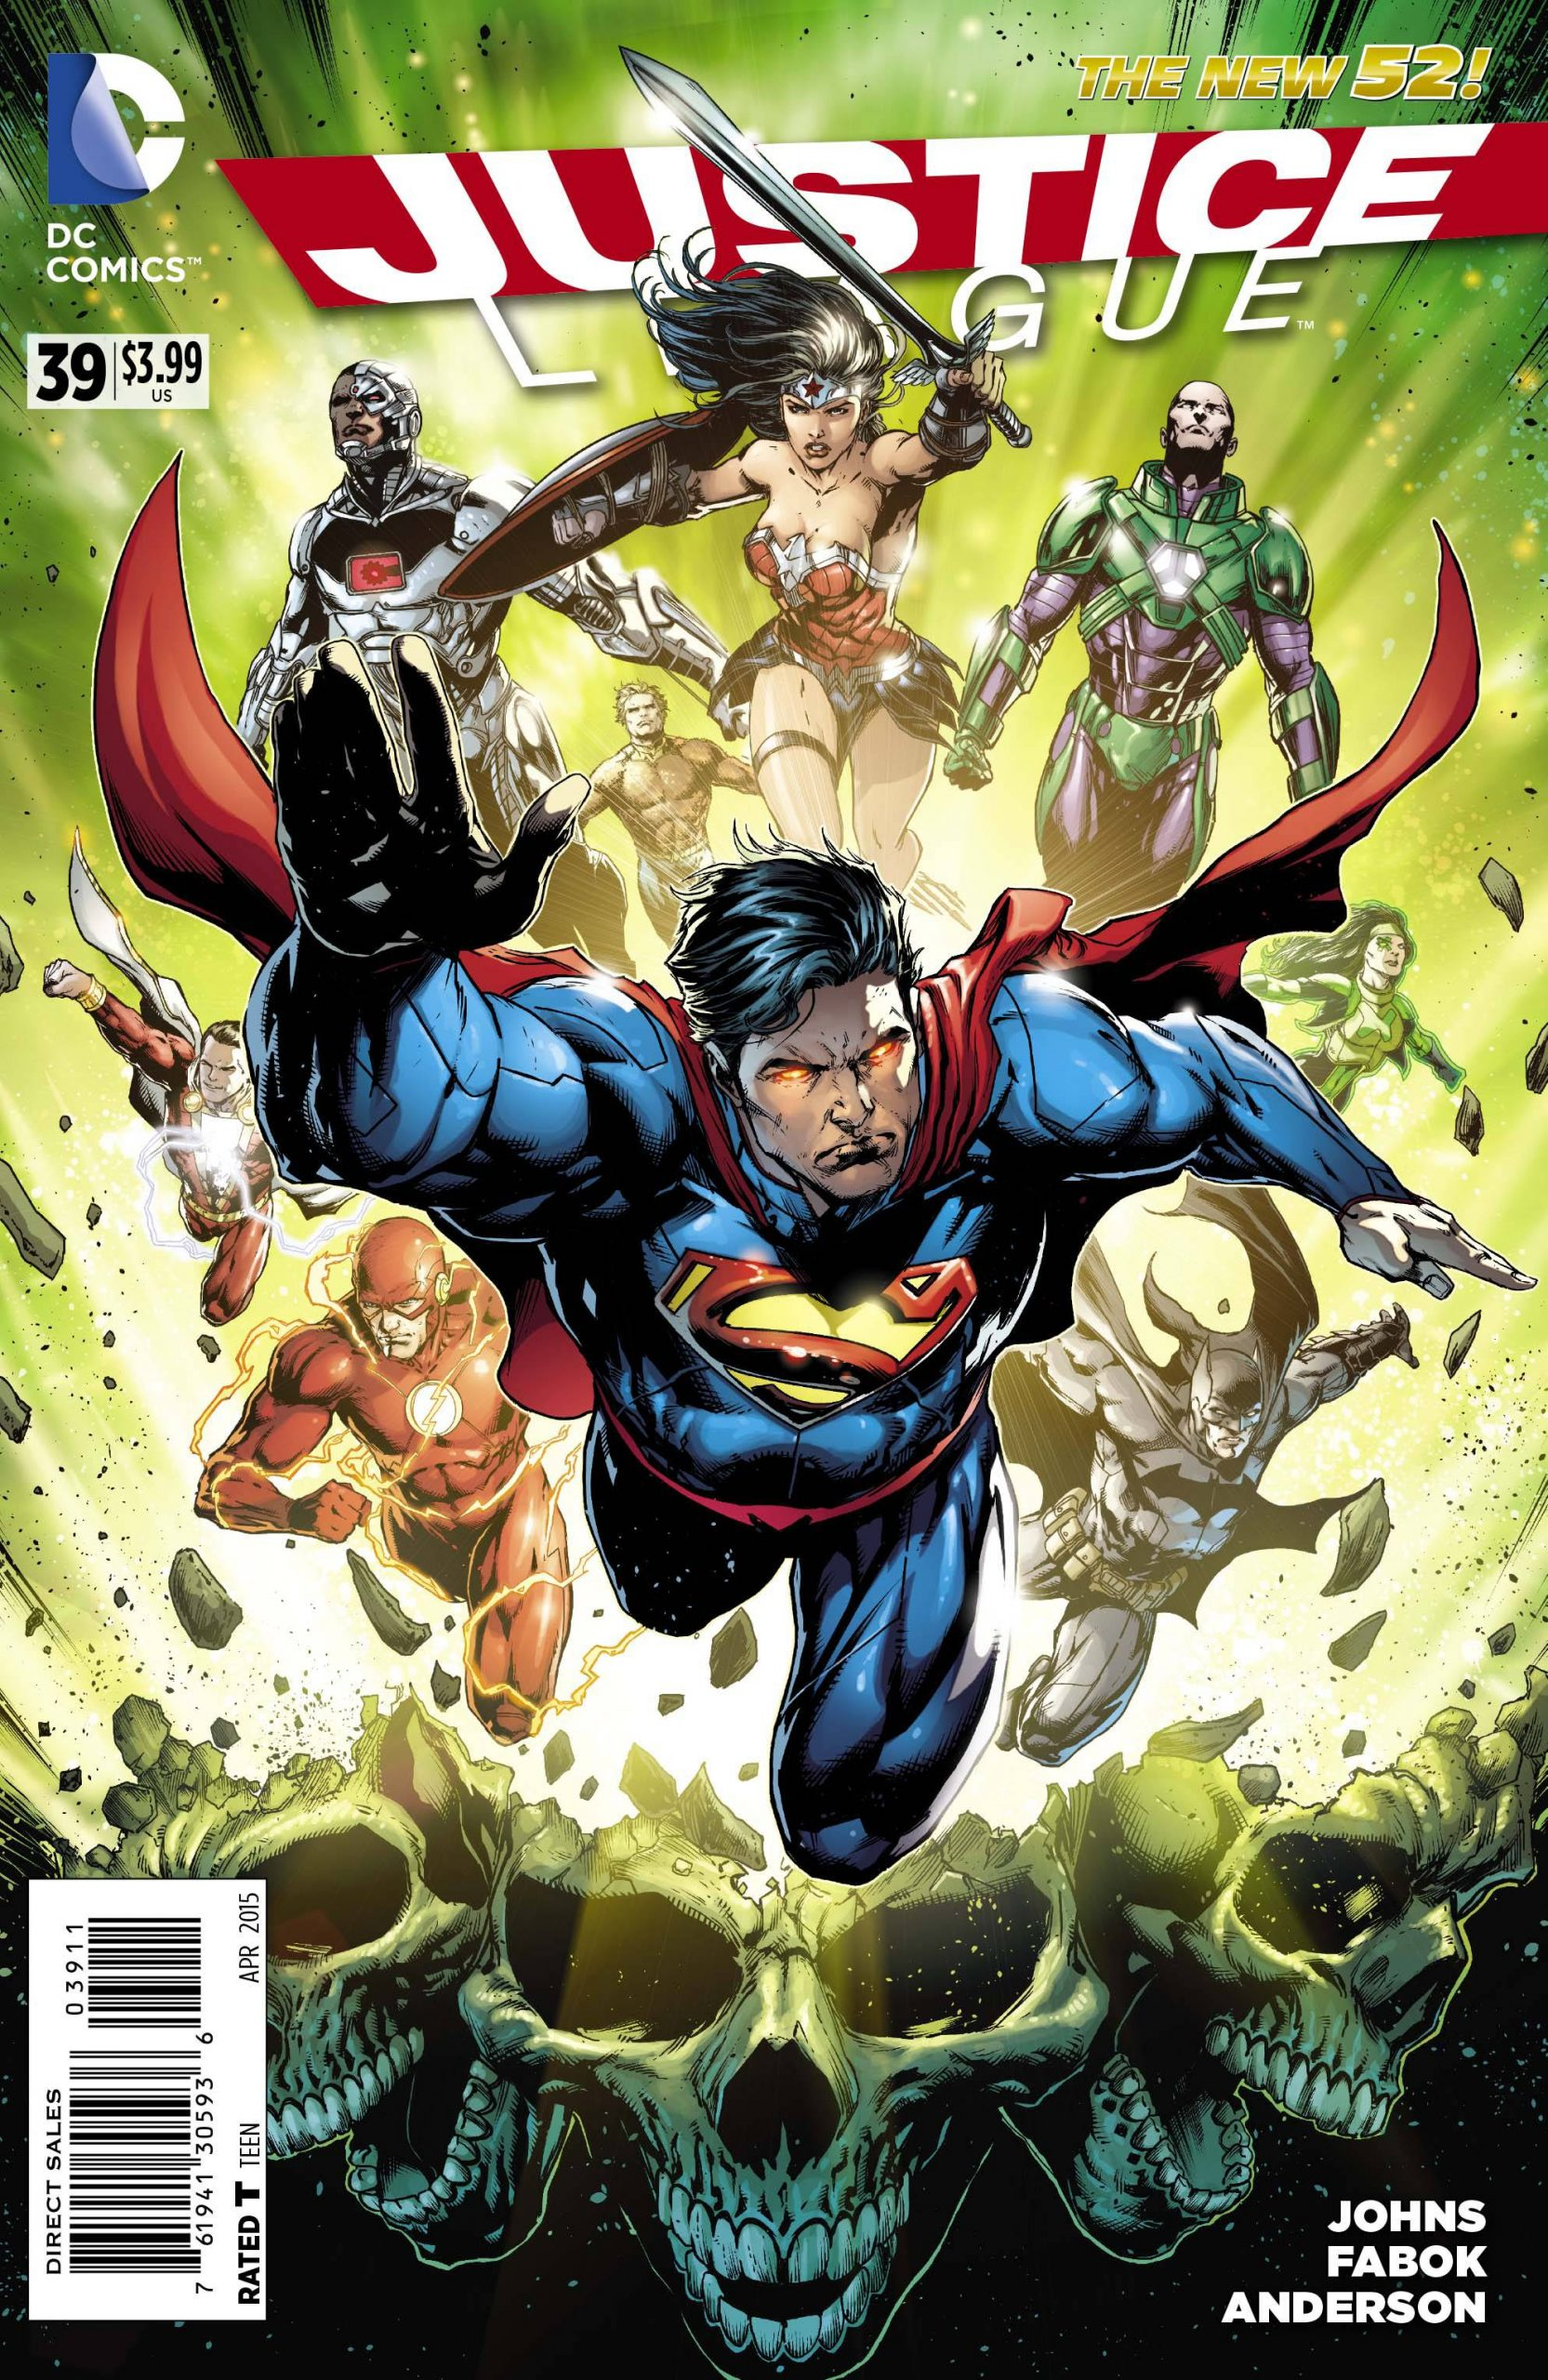 Justice-League-39-cover.jpg